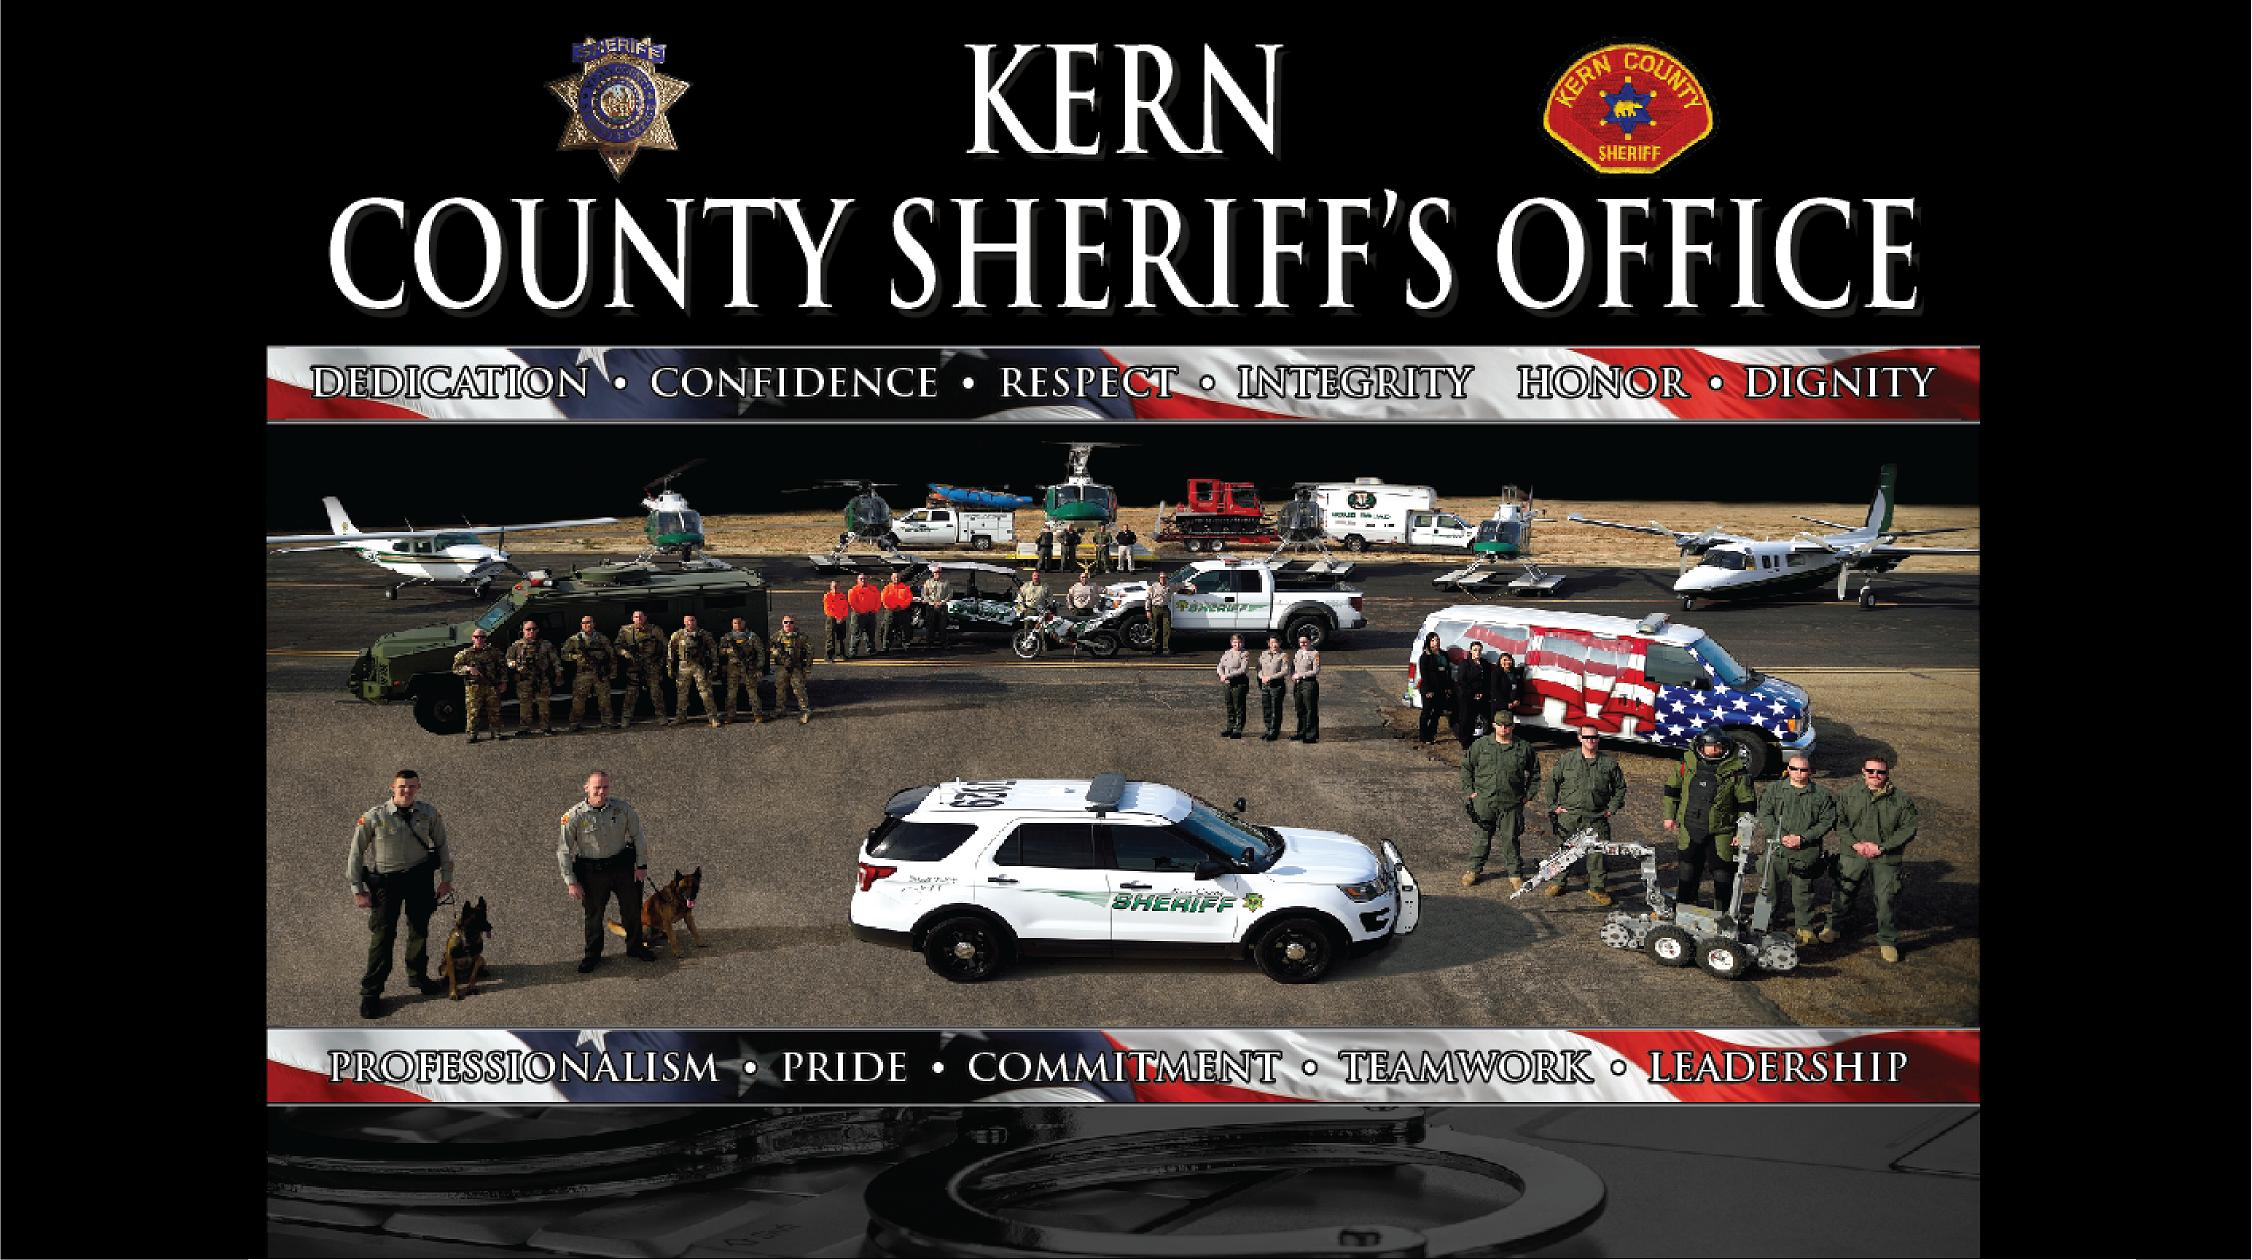 Human Resources | KCSO